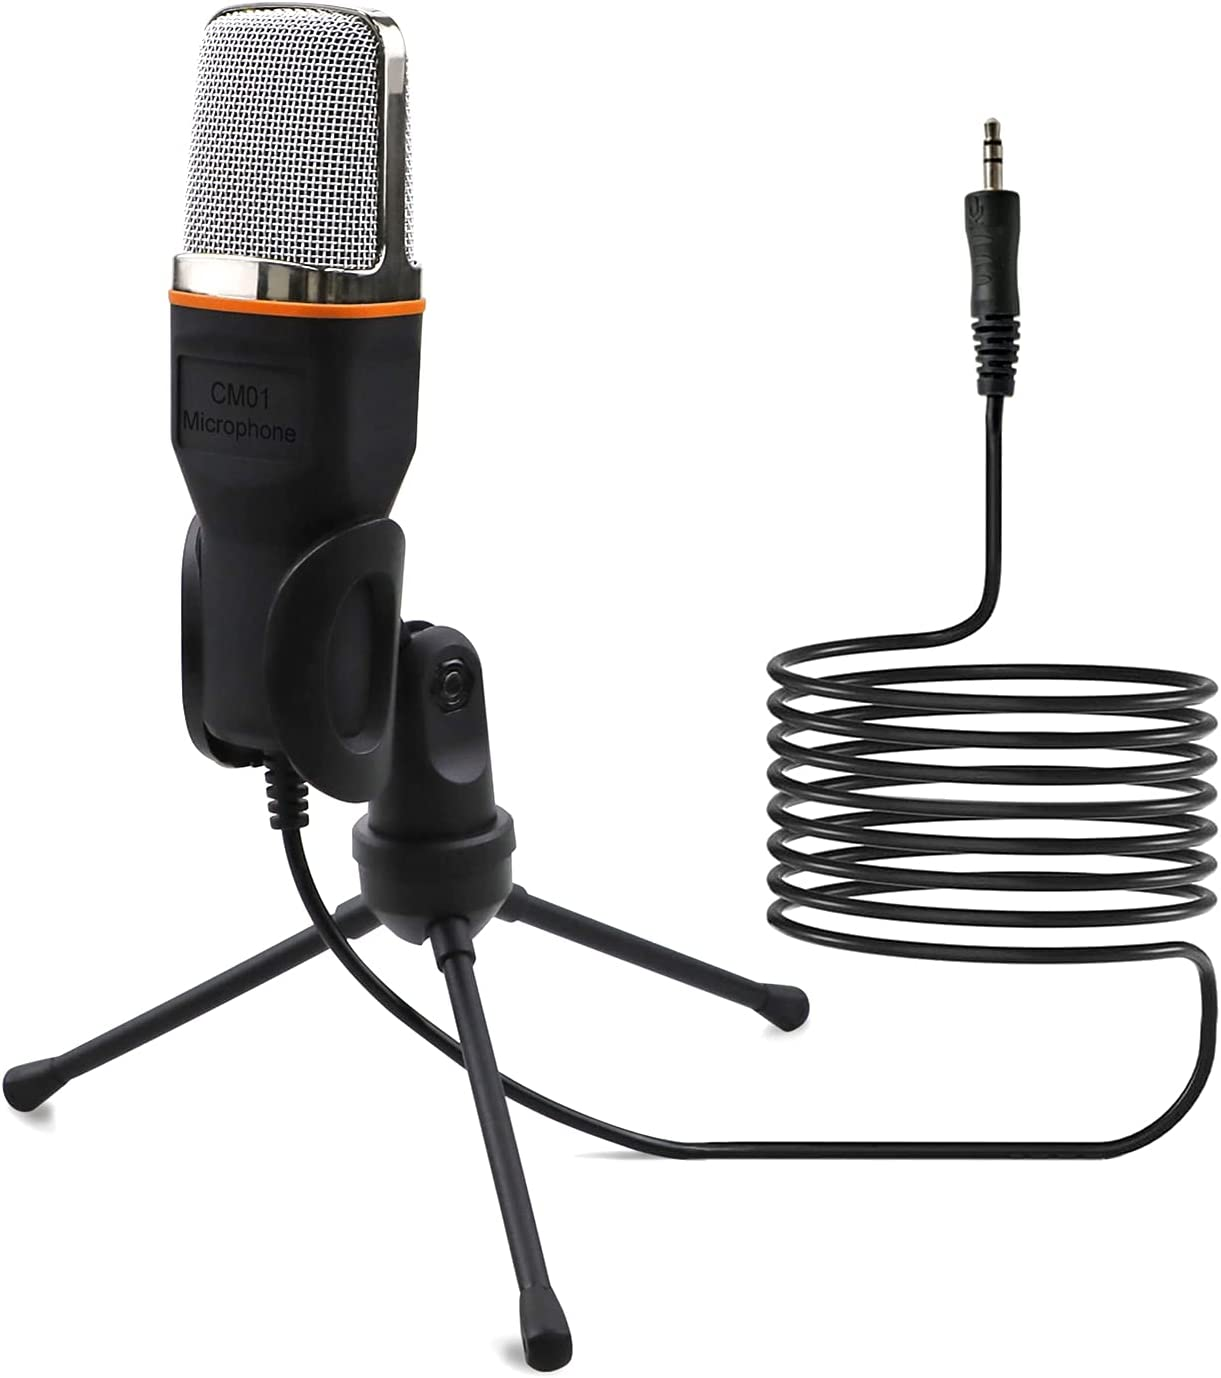 Fashionable Topics on TV Irishom Microphone Wired Condenser with 3 3.5mm Audio